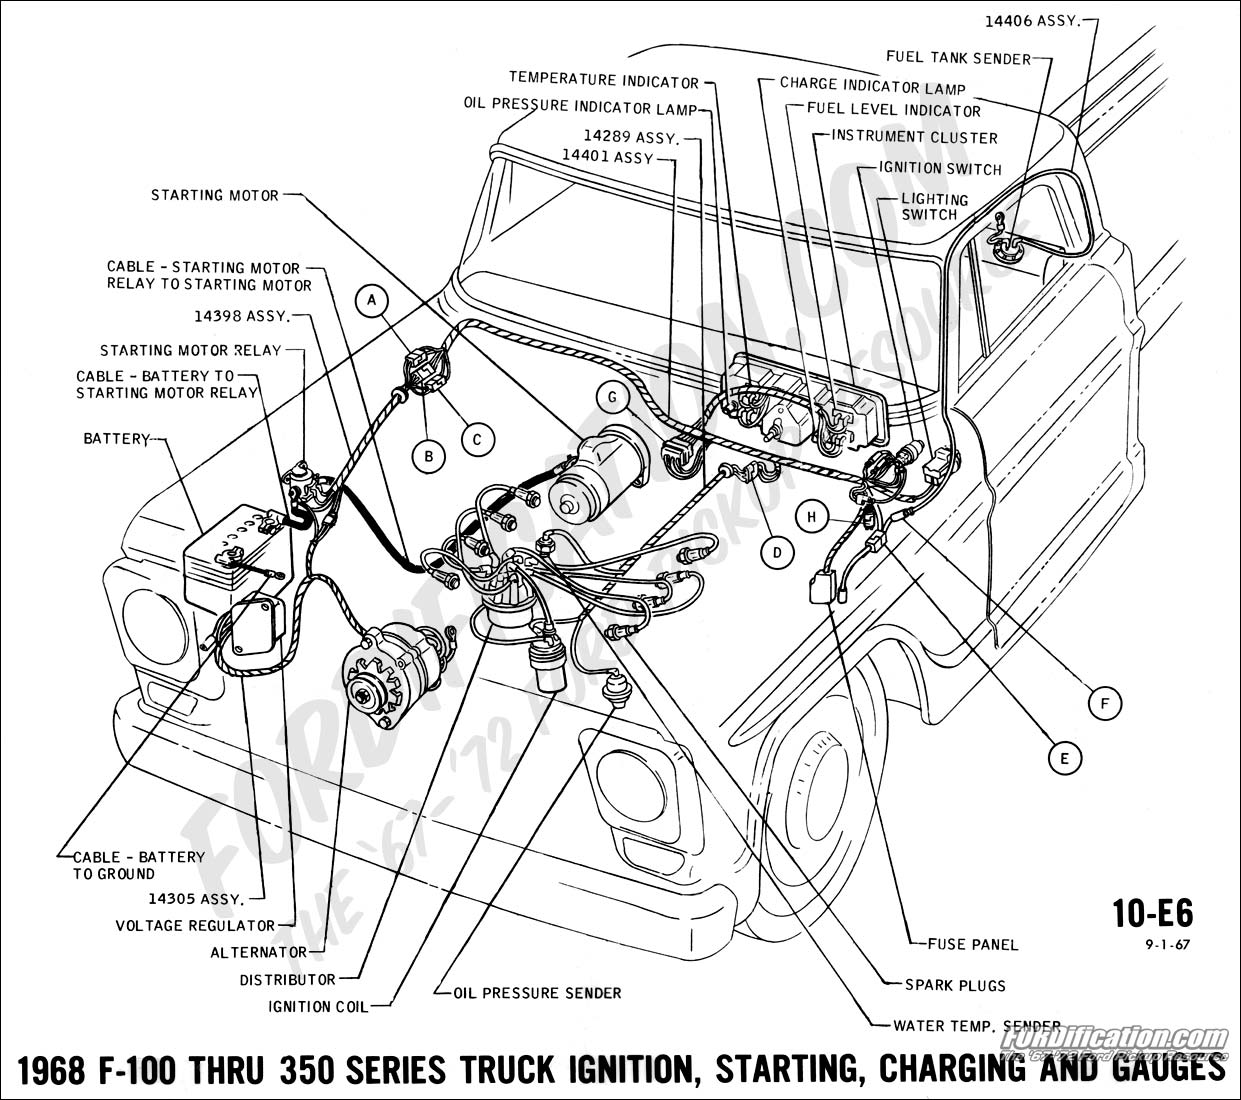 1987 Ford F350 Wiring Diagram from www.fordification.com